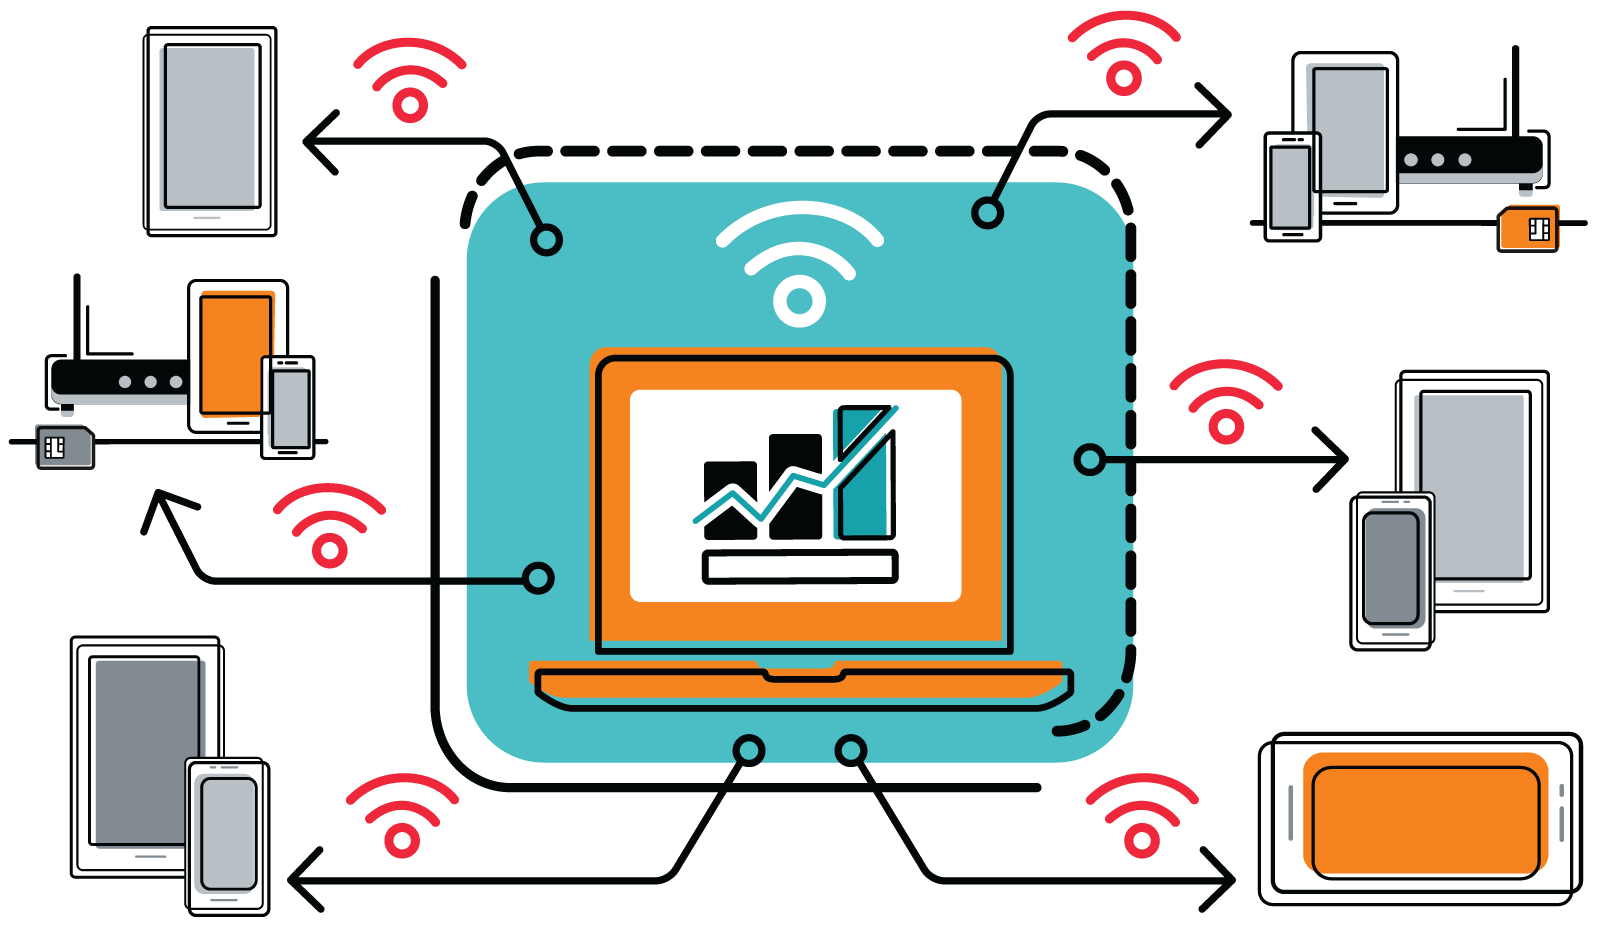 Turnkey service for IoT rollouts